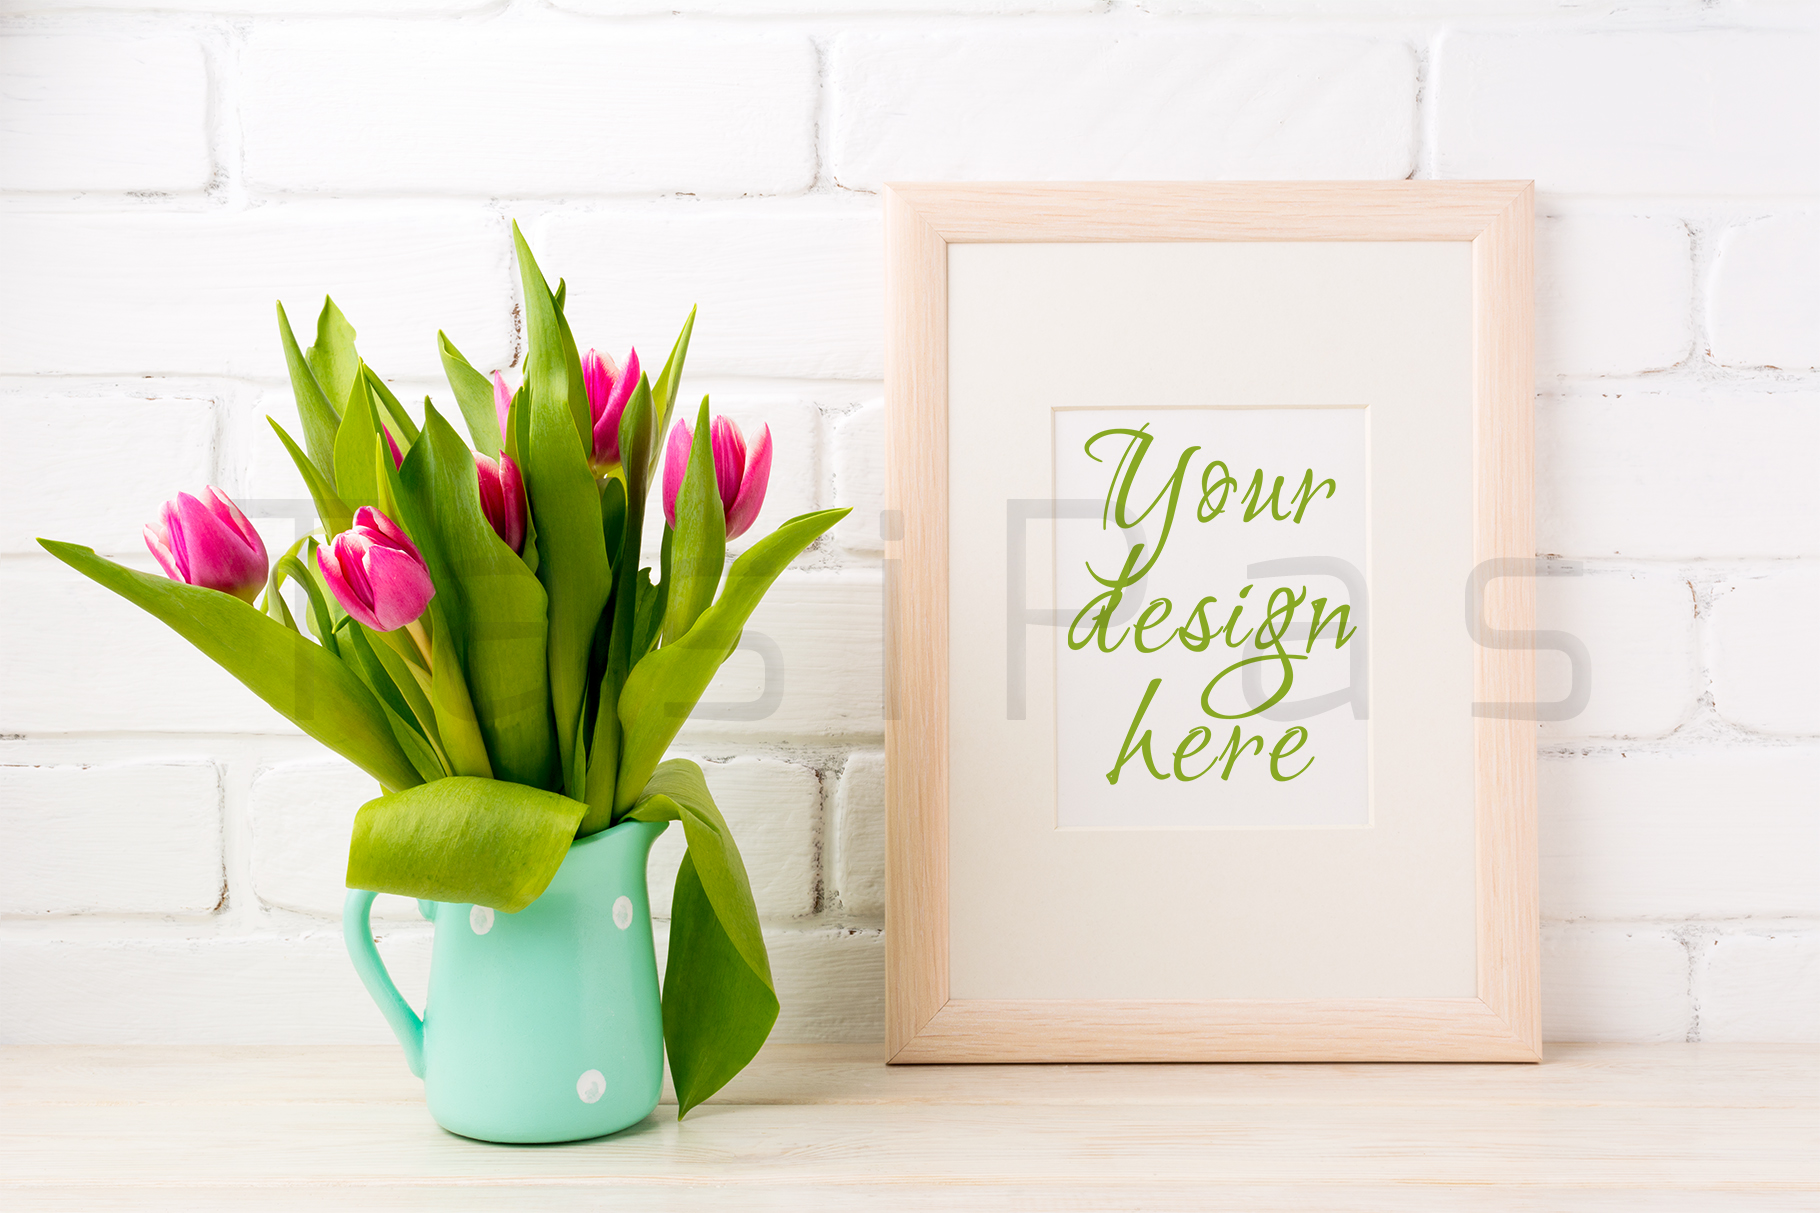 Wooden frame mockup with bright pink tulips bouquet in mint jug near white painted brick wall.  example image 1